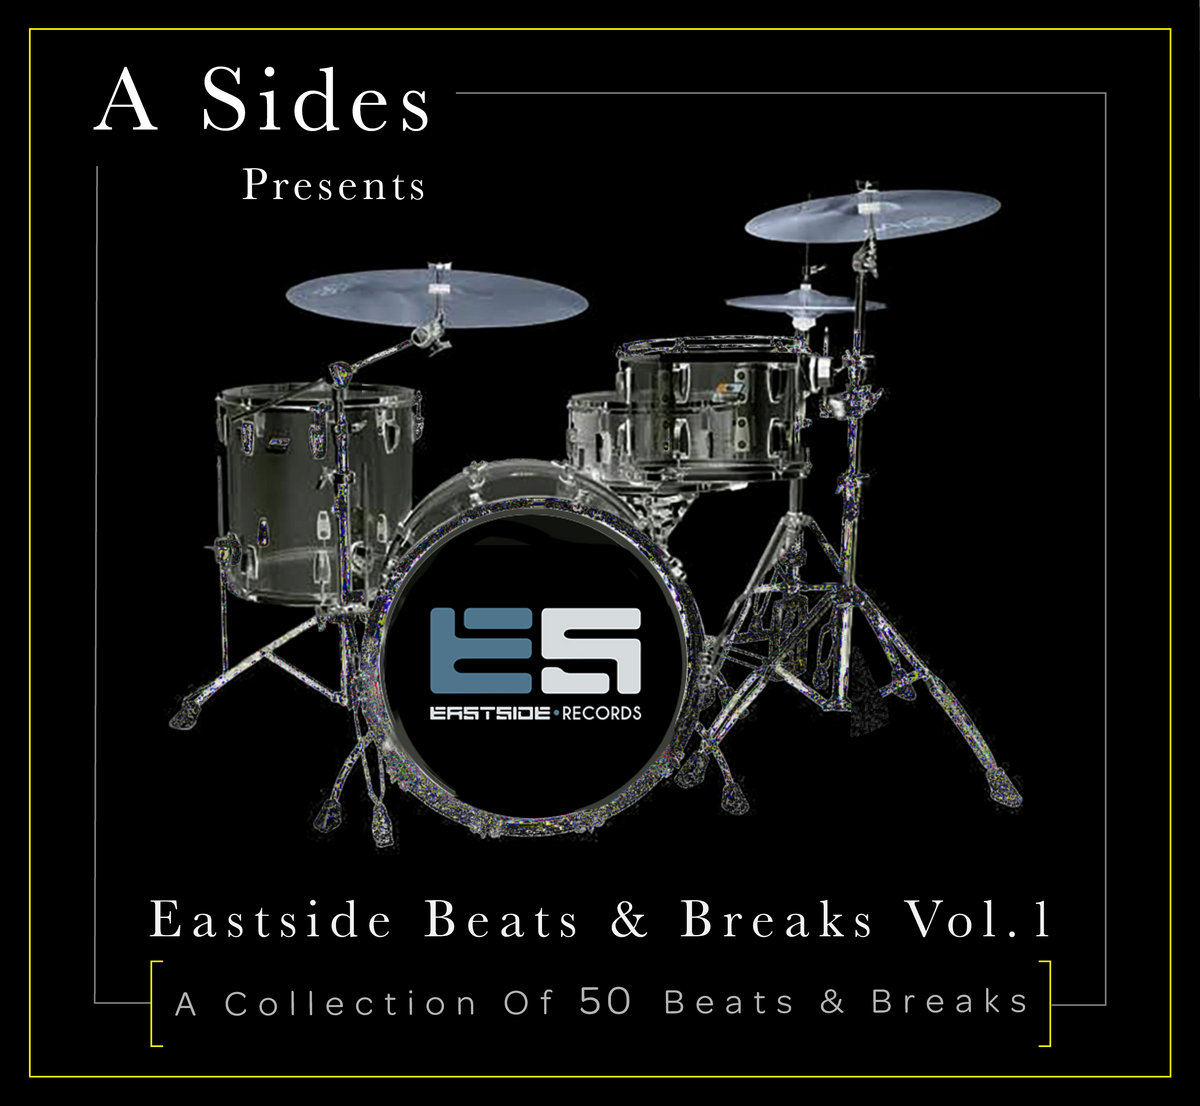 20% DISCOUNT ON EASTSIDES BEATS & BREAKS V1